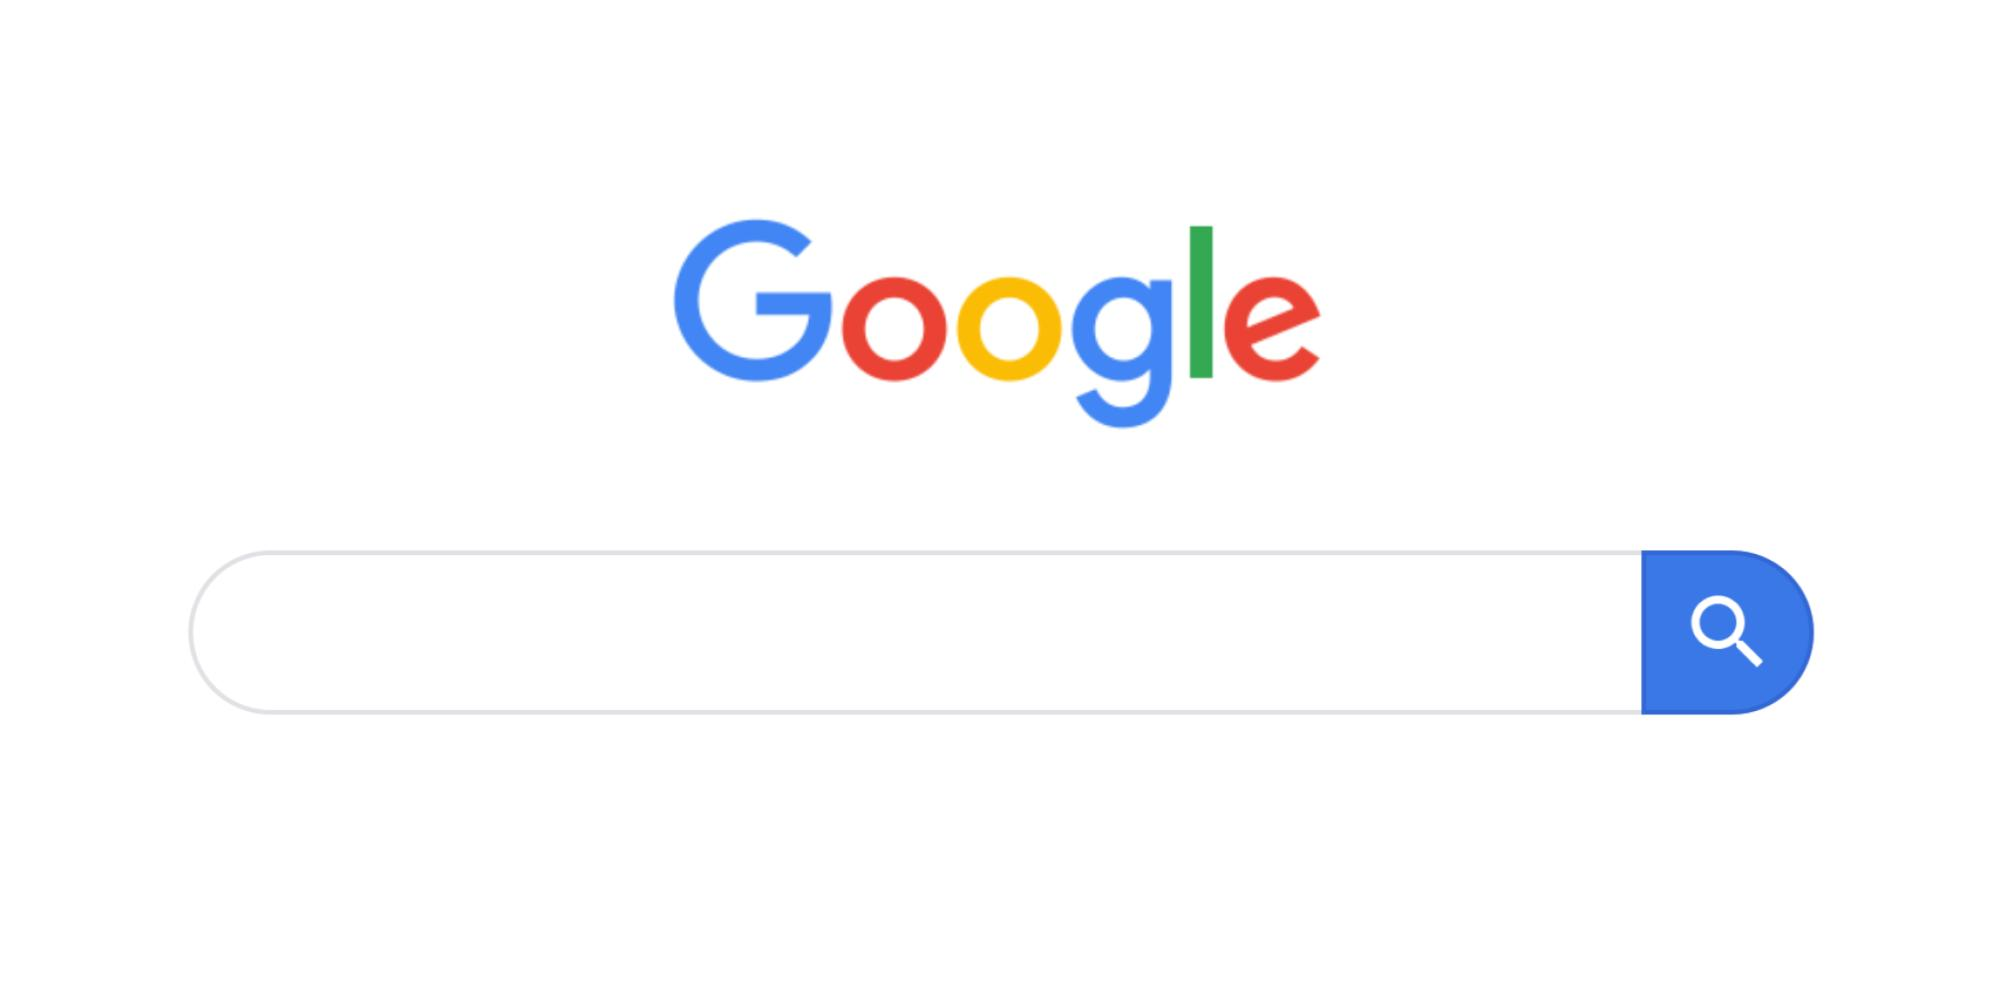 [Update: Rolling out] Google Search adding site favicons to every result, starting on mobile